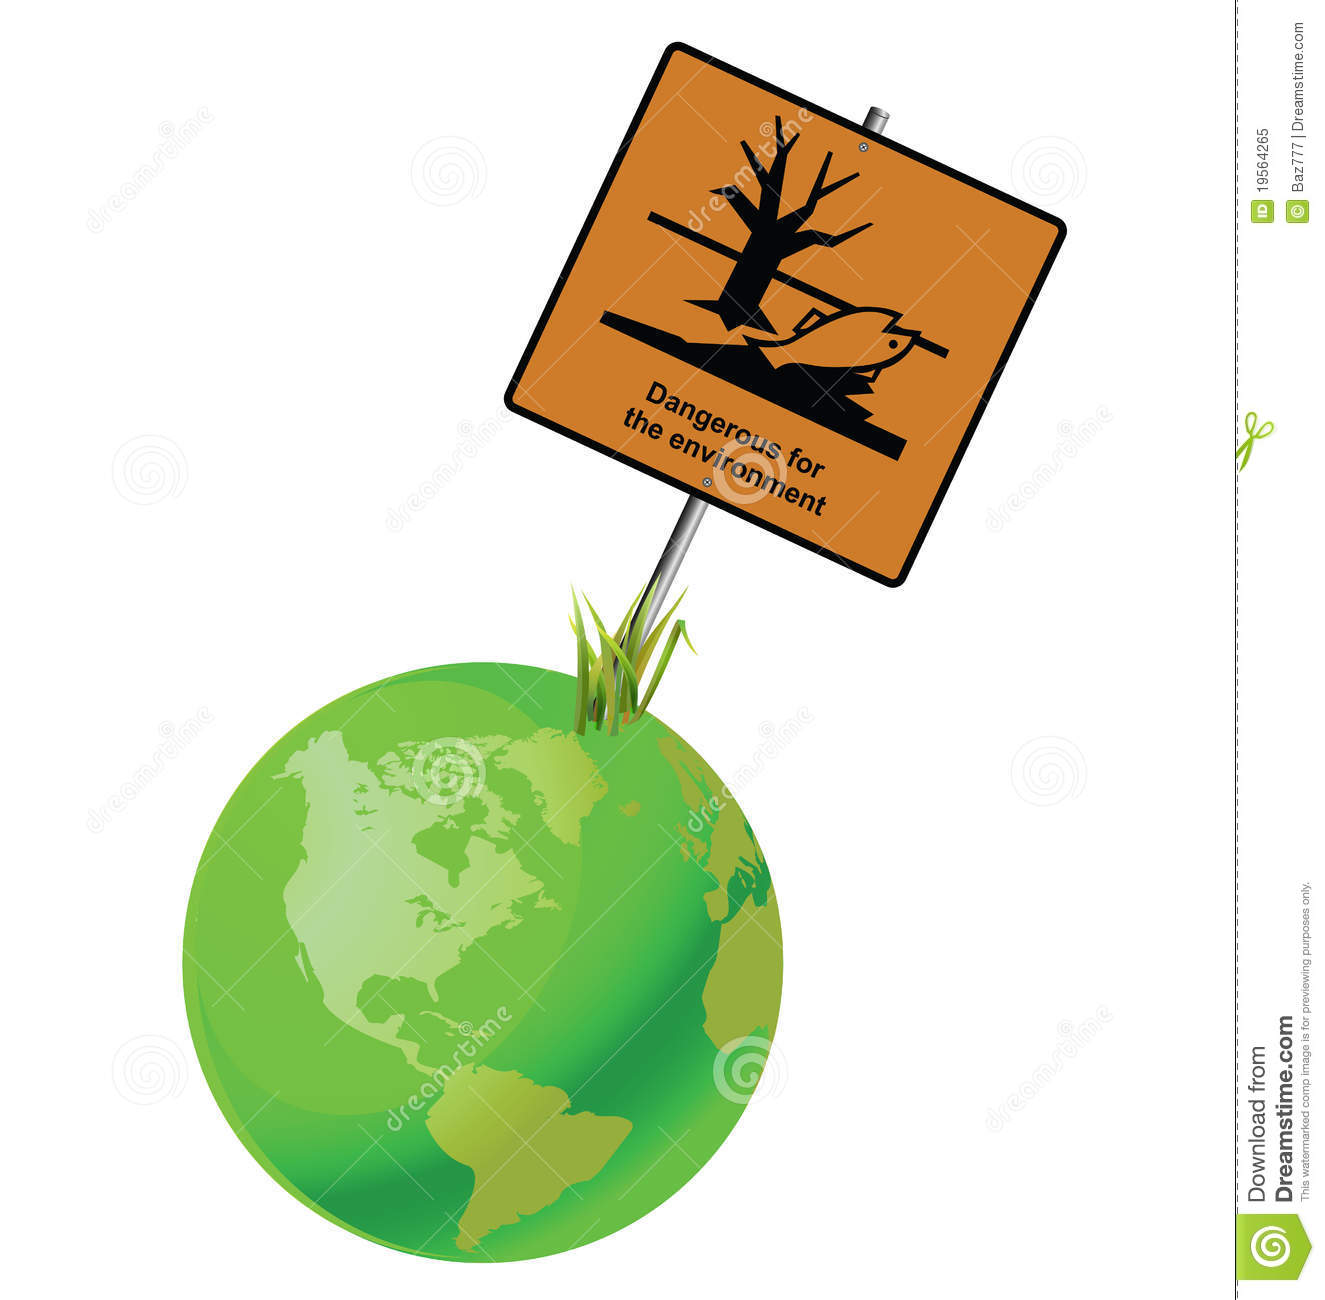 Dangerous To The Environment Sign Royalty Free Stock Photo